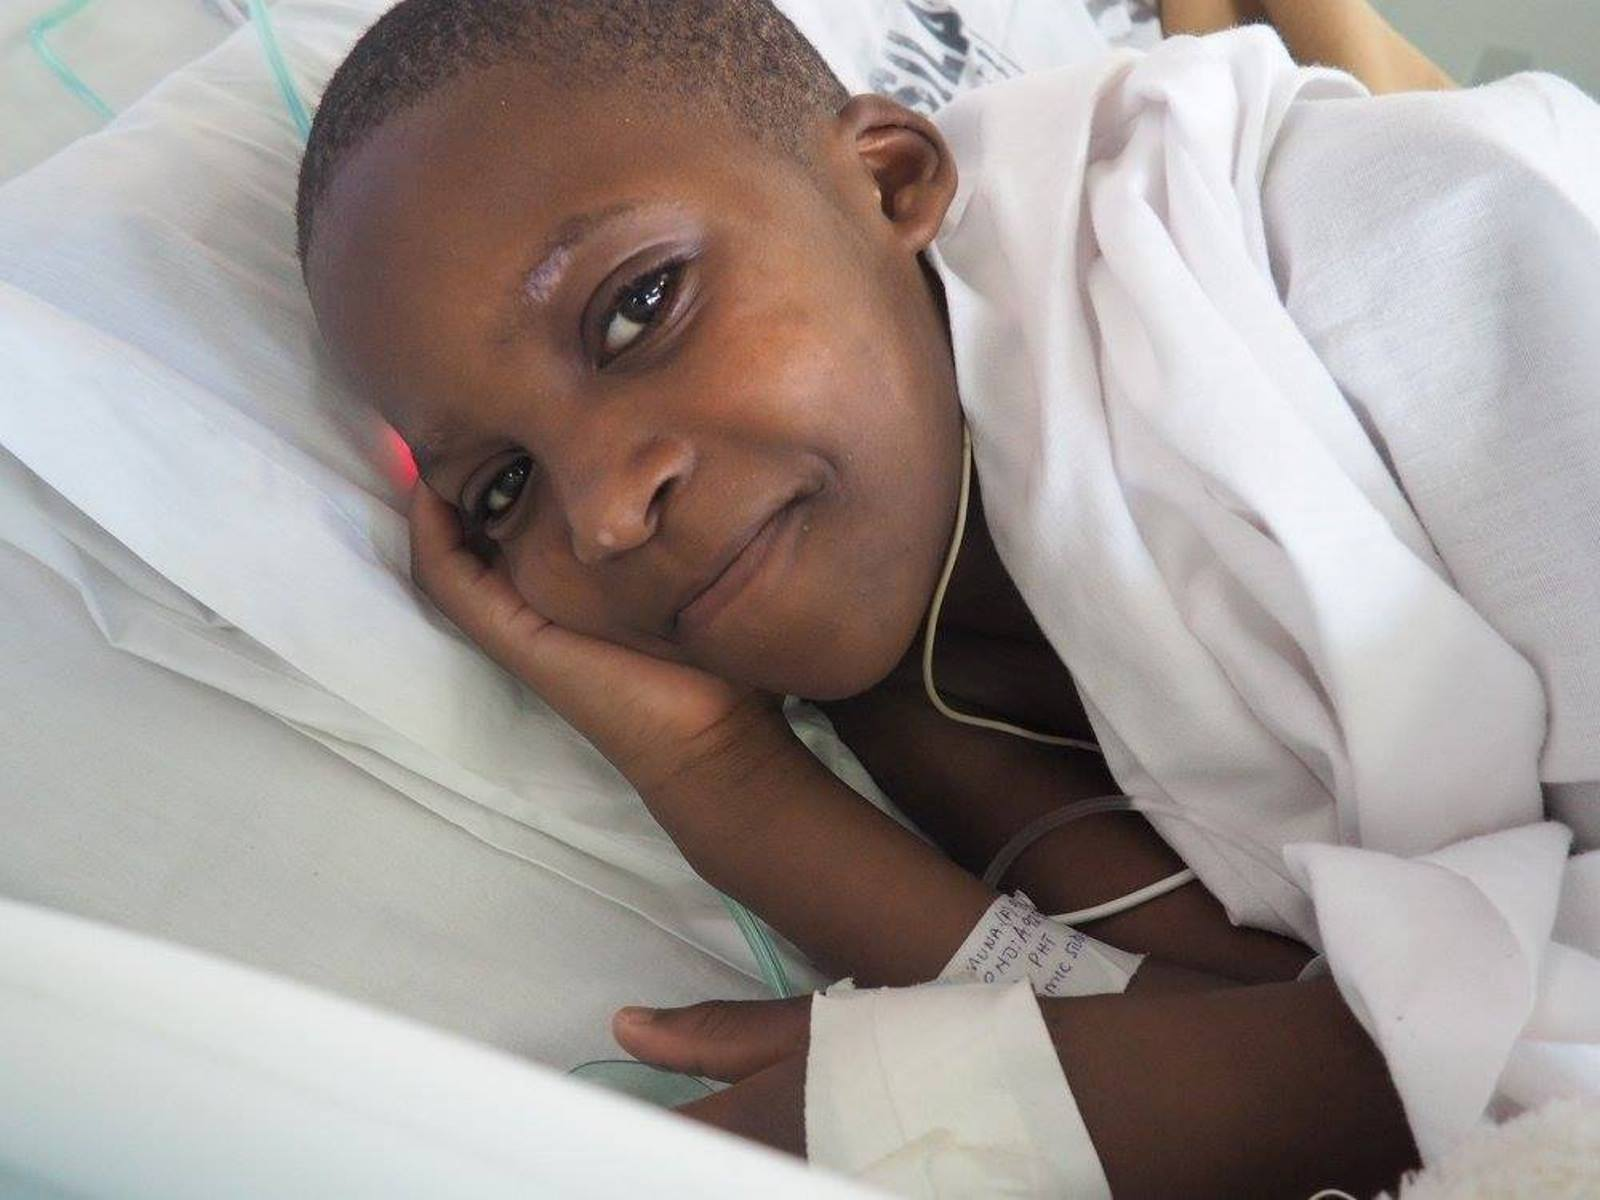 Zahara was the first catheterization patient of the March 2016 SACH mission to Tanzania. Photo courtesy of SACH